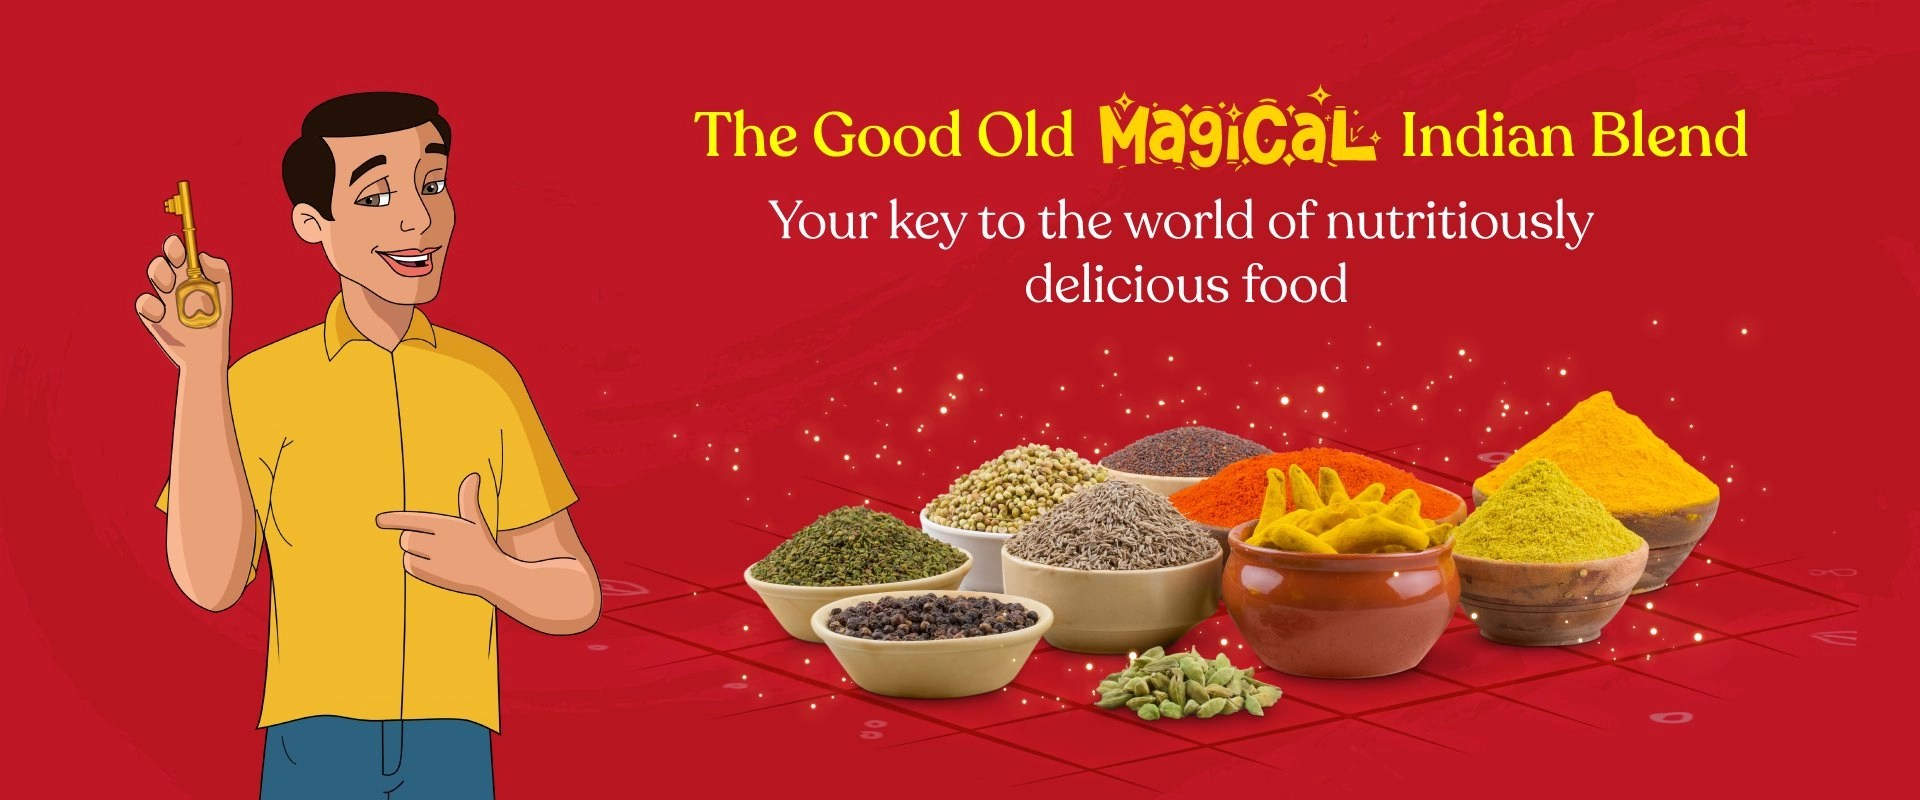 annapoorna-masala-the-good-old-magical-indian-blend-cover